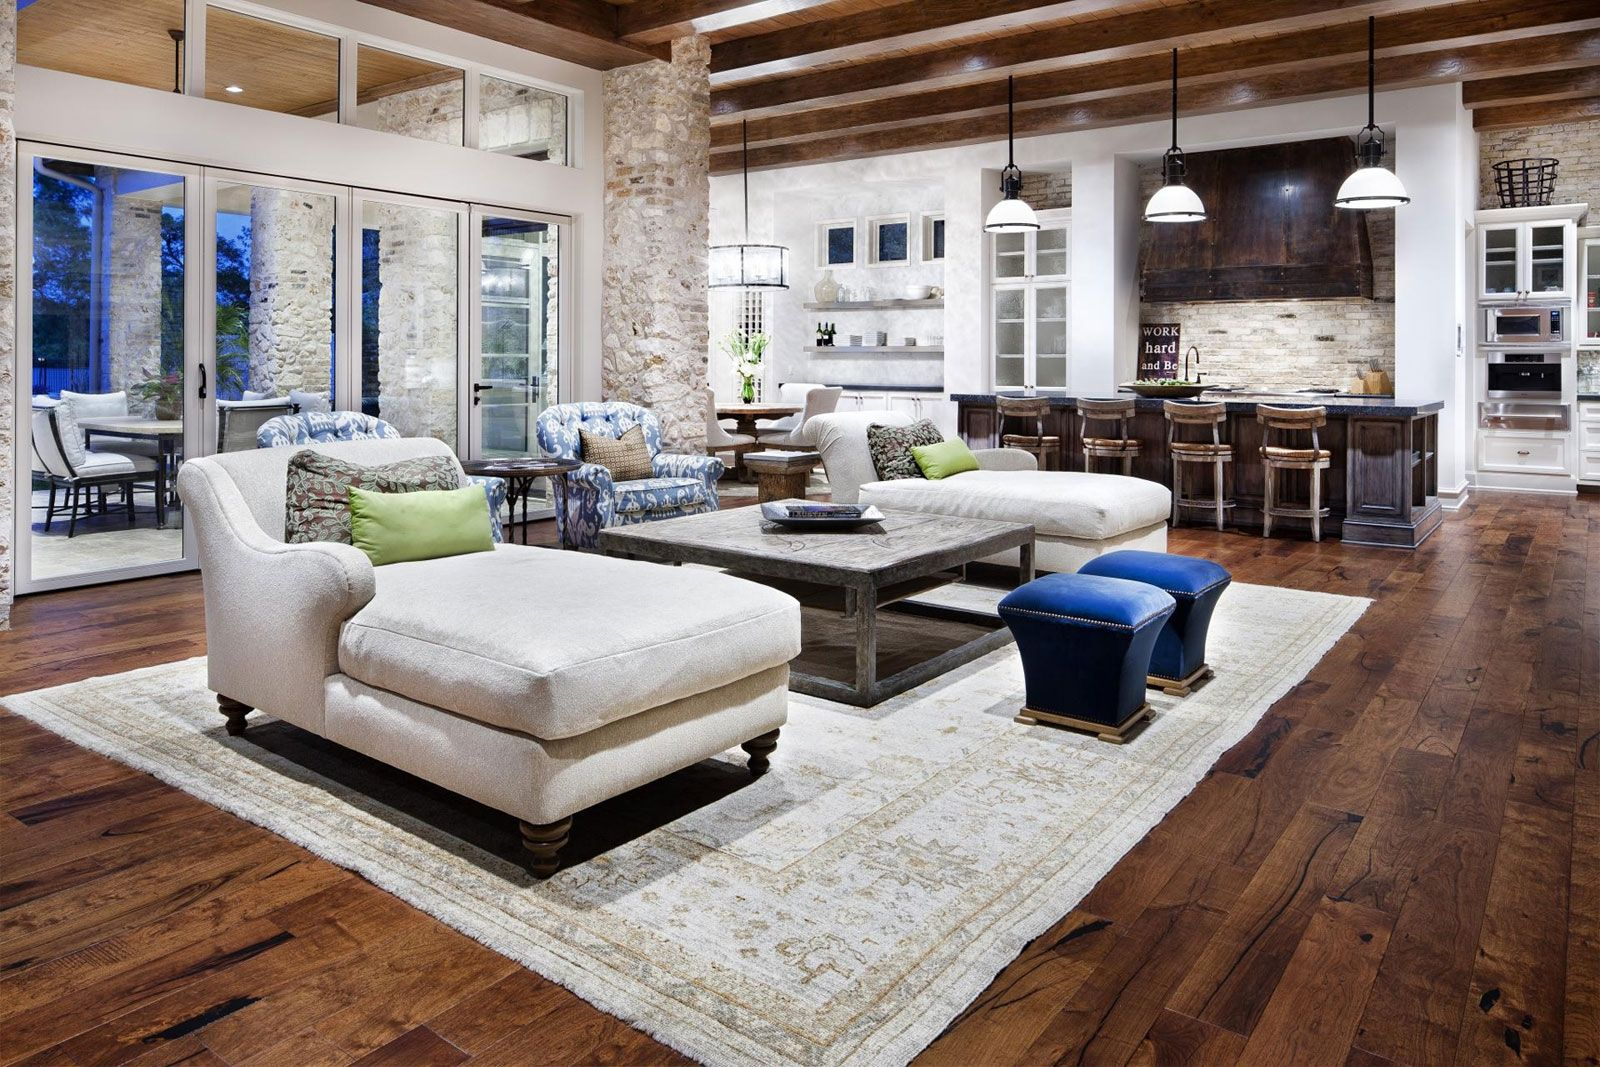 Chaise Lounge Decorating Ideas Large Rustic Modern Living Room ...